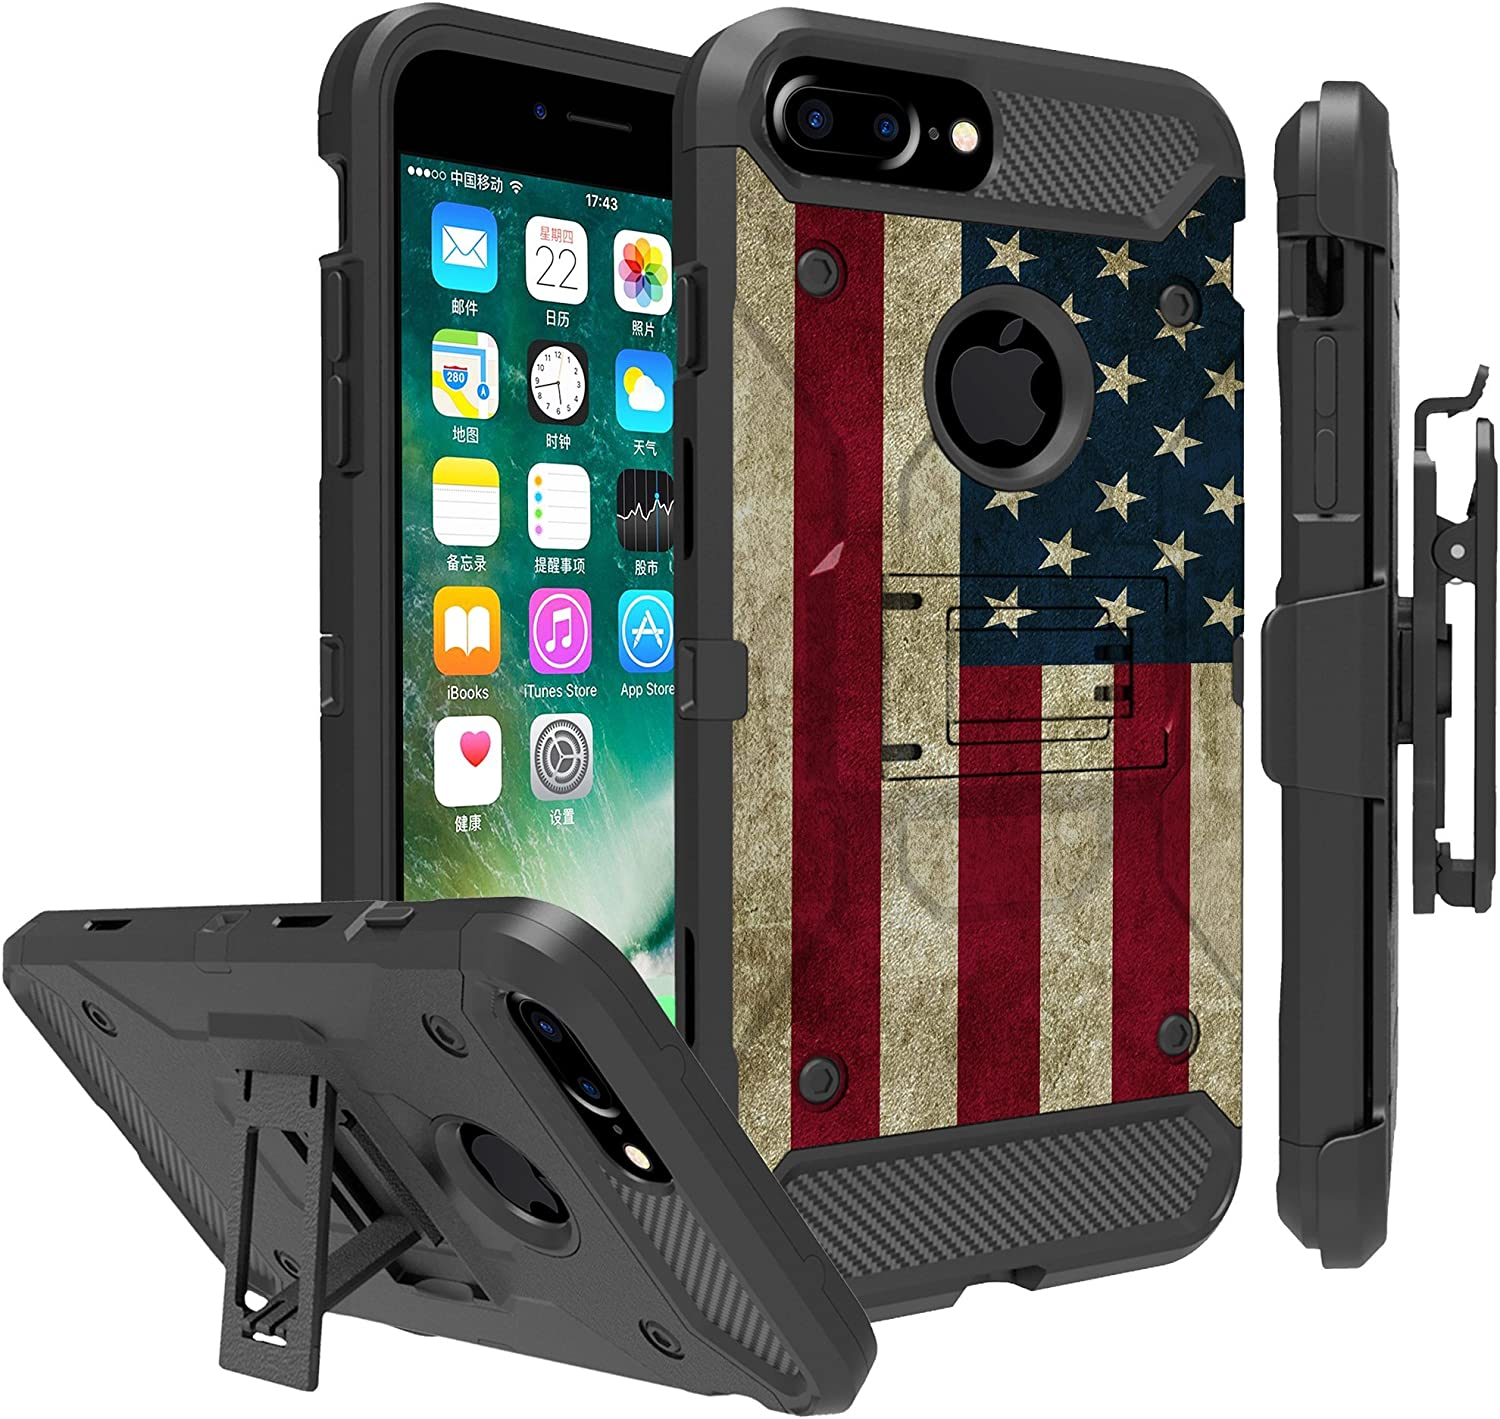 Untouchble Case for Apple iPhone 6 Plus, iPhone 7 Plus, iPhone 8 Plus Case Holster Case [TANK SERIES] Built Tough Triple Protection Inner TPU Hard Exterior Shell Belt Clip - Vintage American Flag